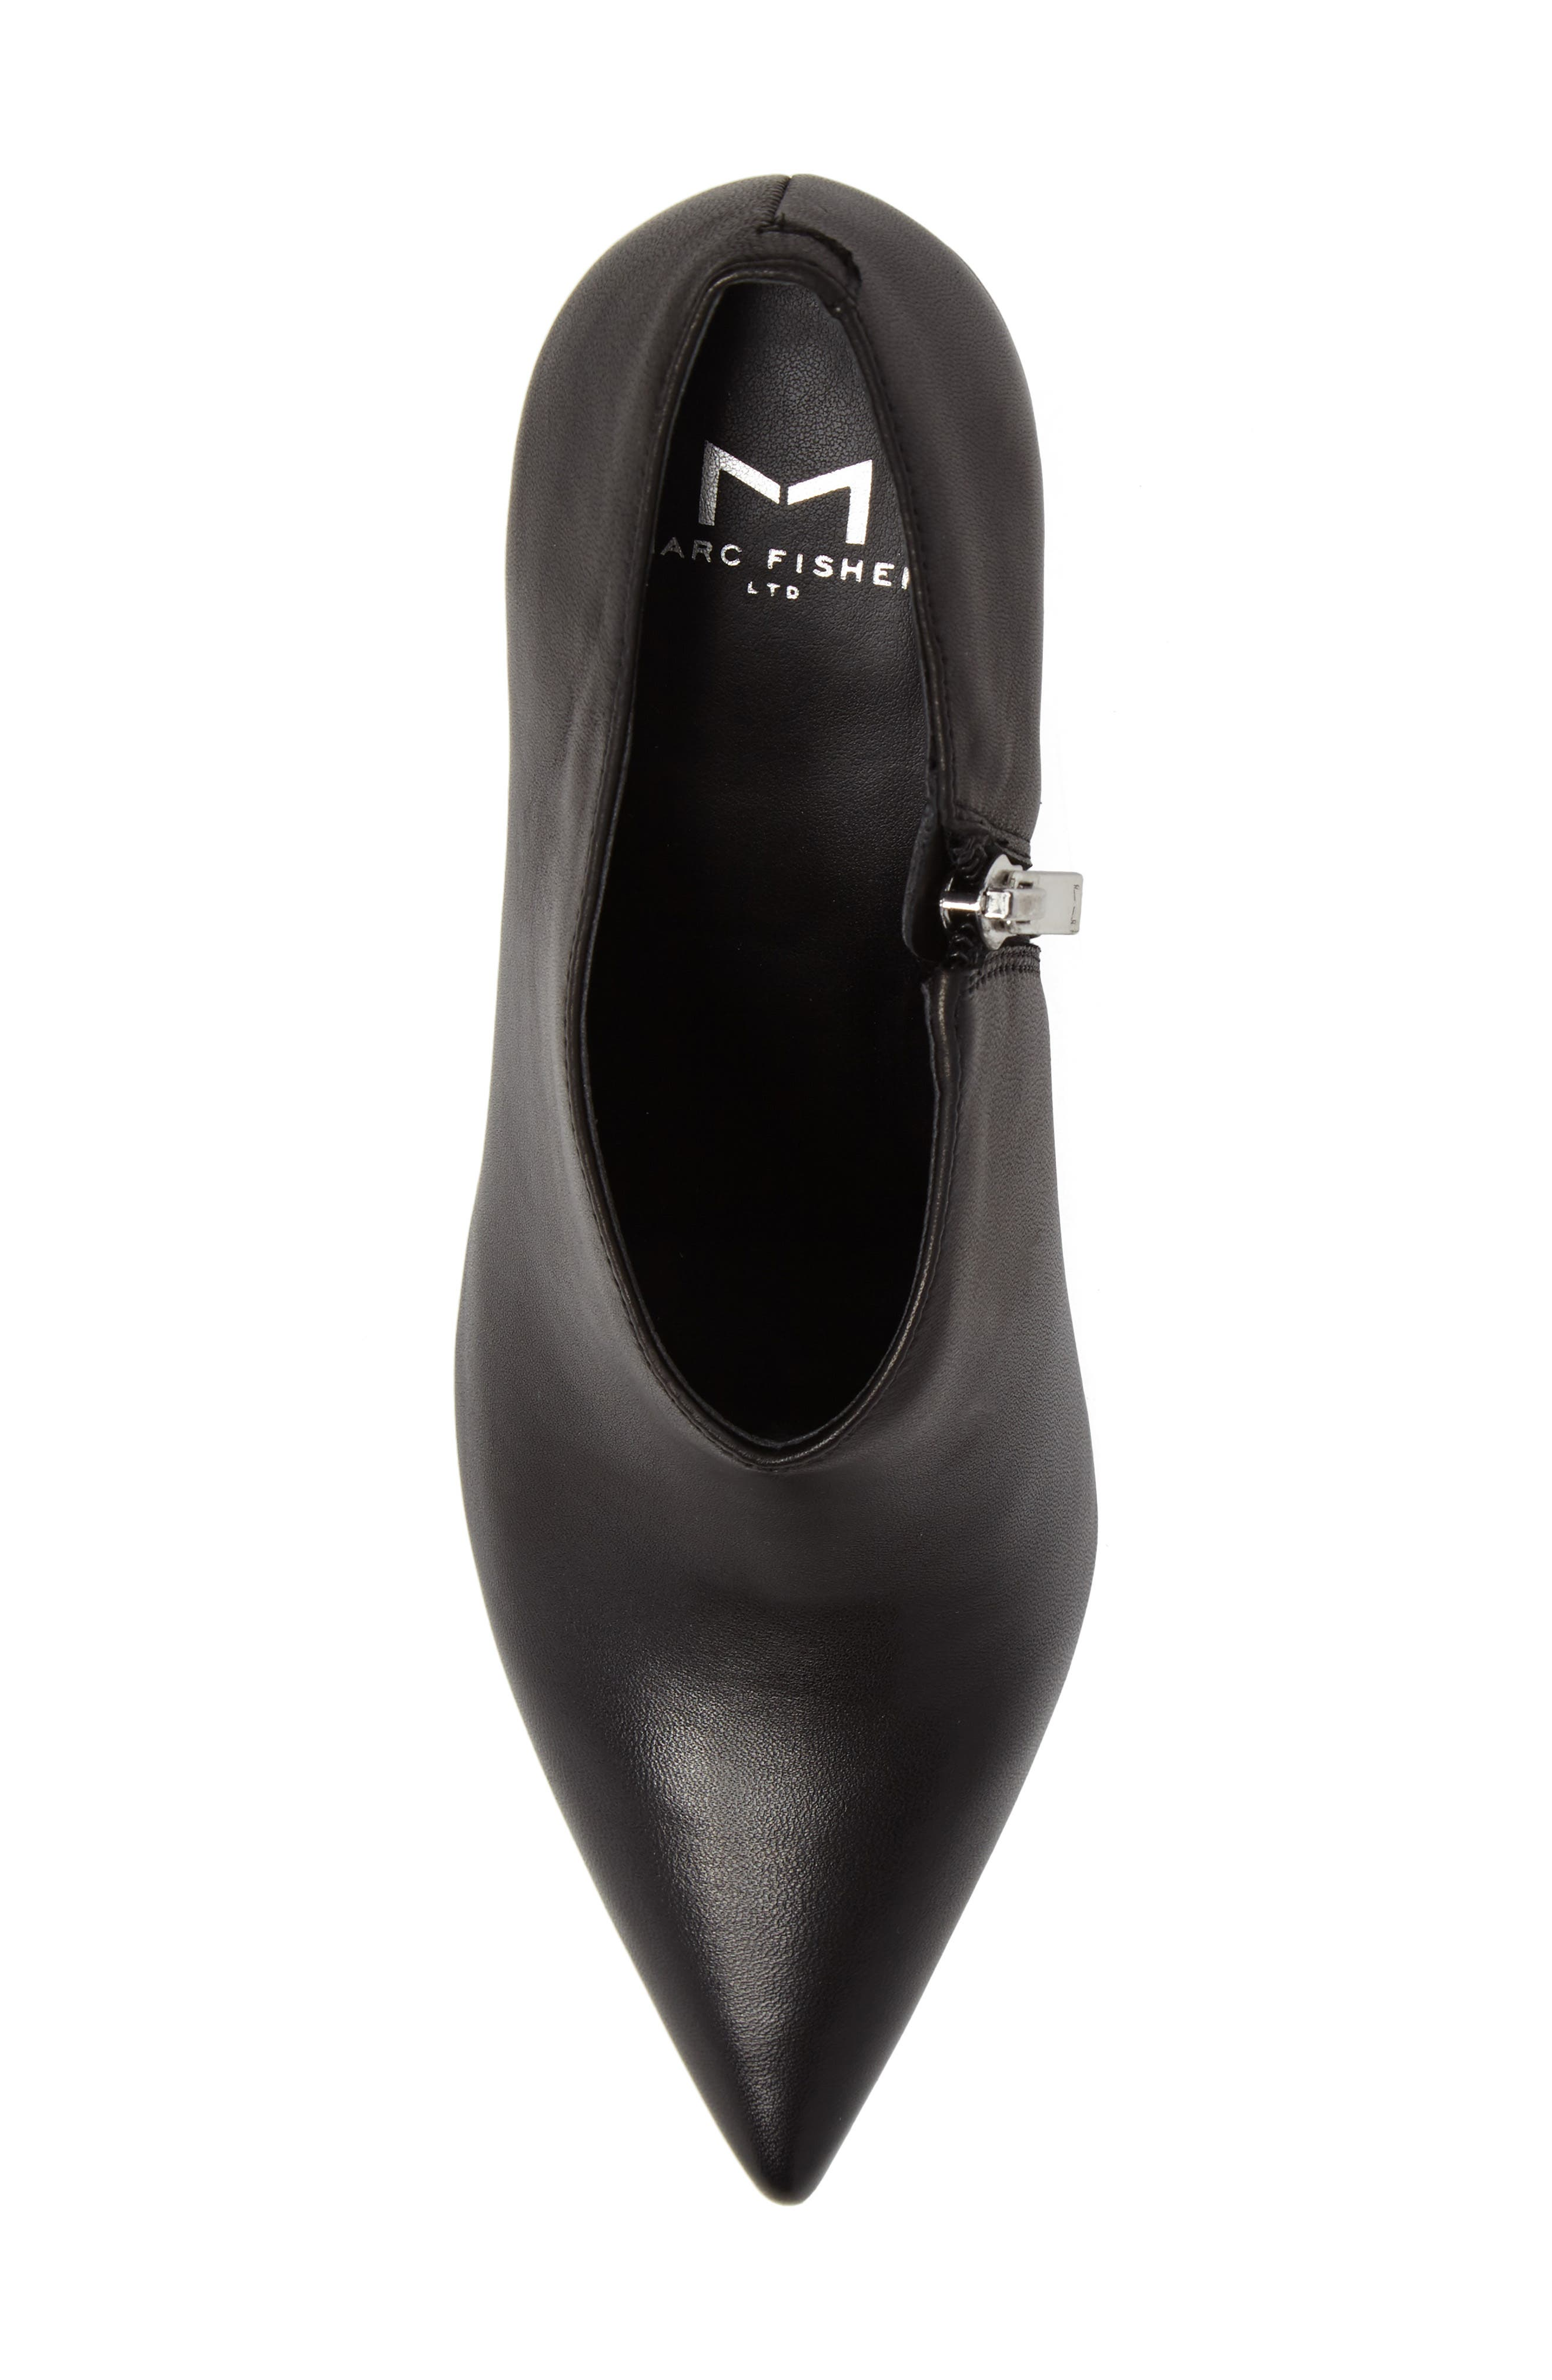 Hoda Pointy Toe Bootie,                             Alternate thumbnail 5, color,                             Black Leather